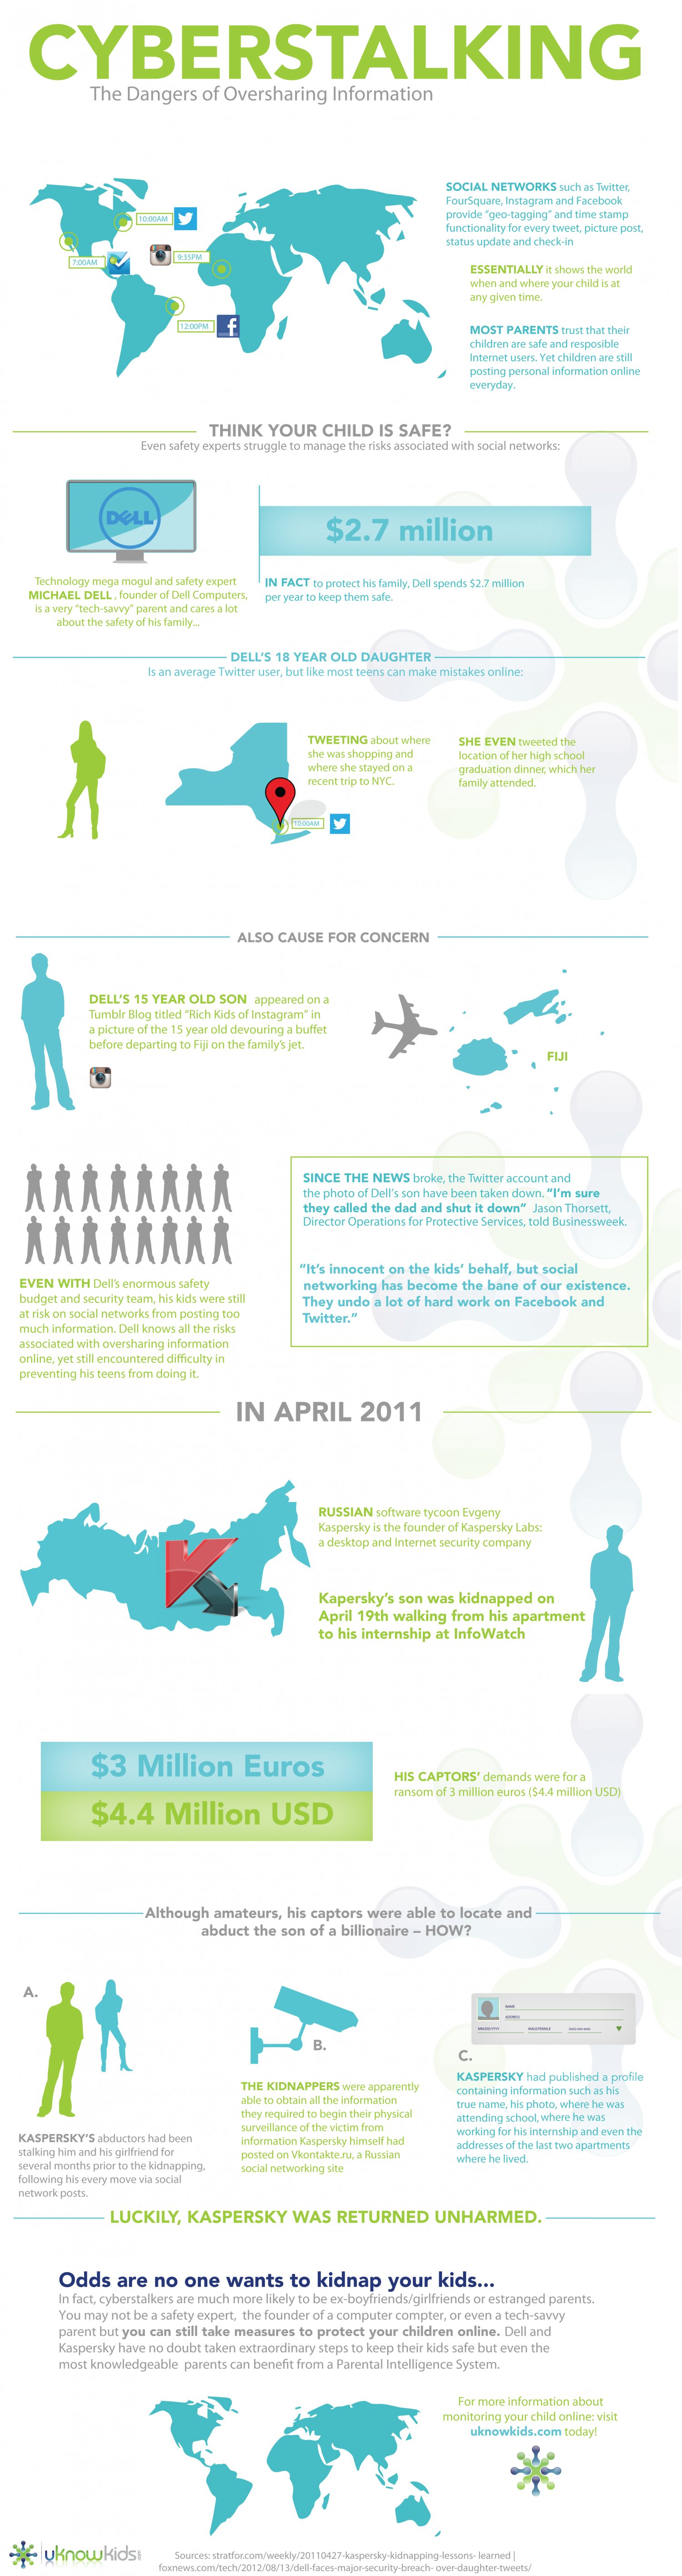 Cyber Stalking: the dangers of over sharing information Infographic